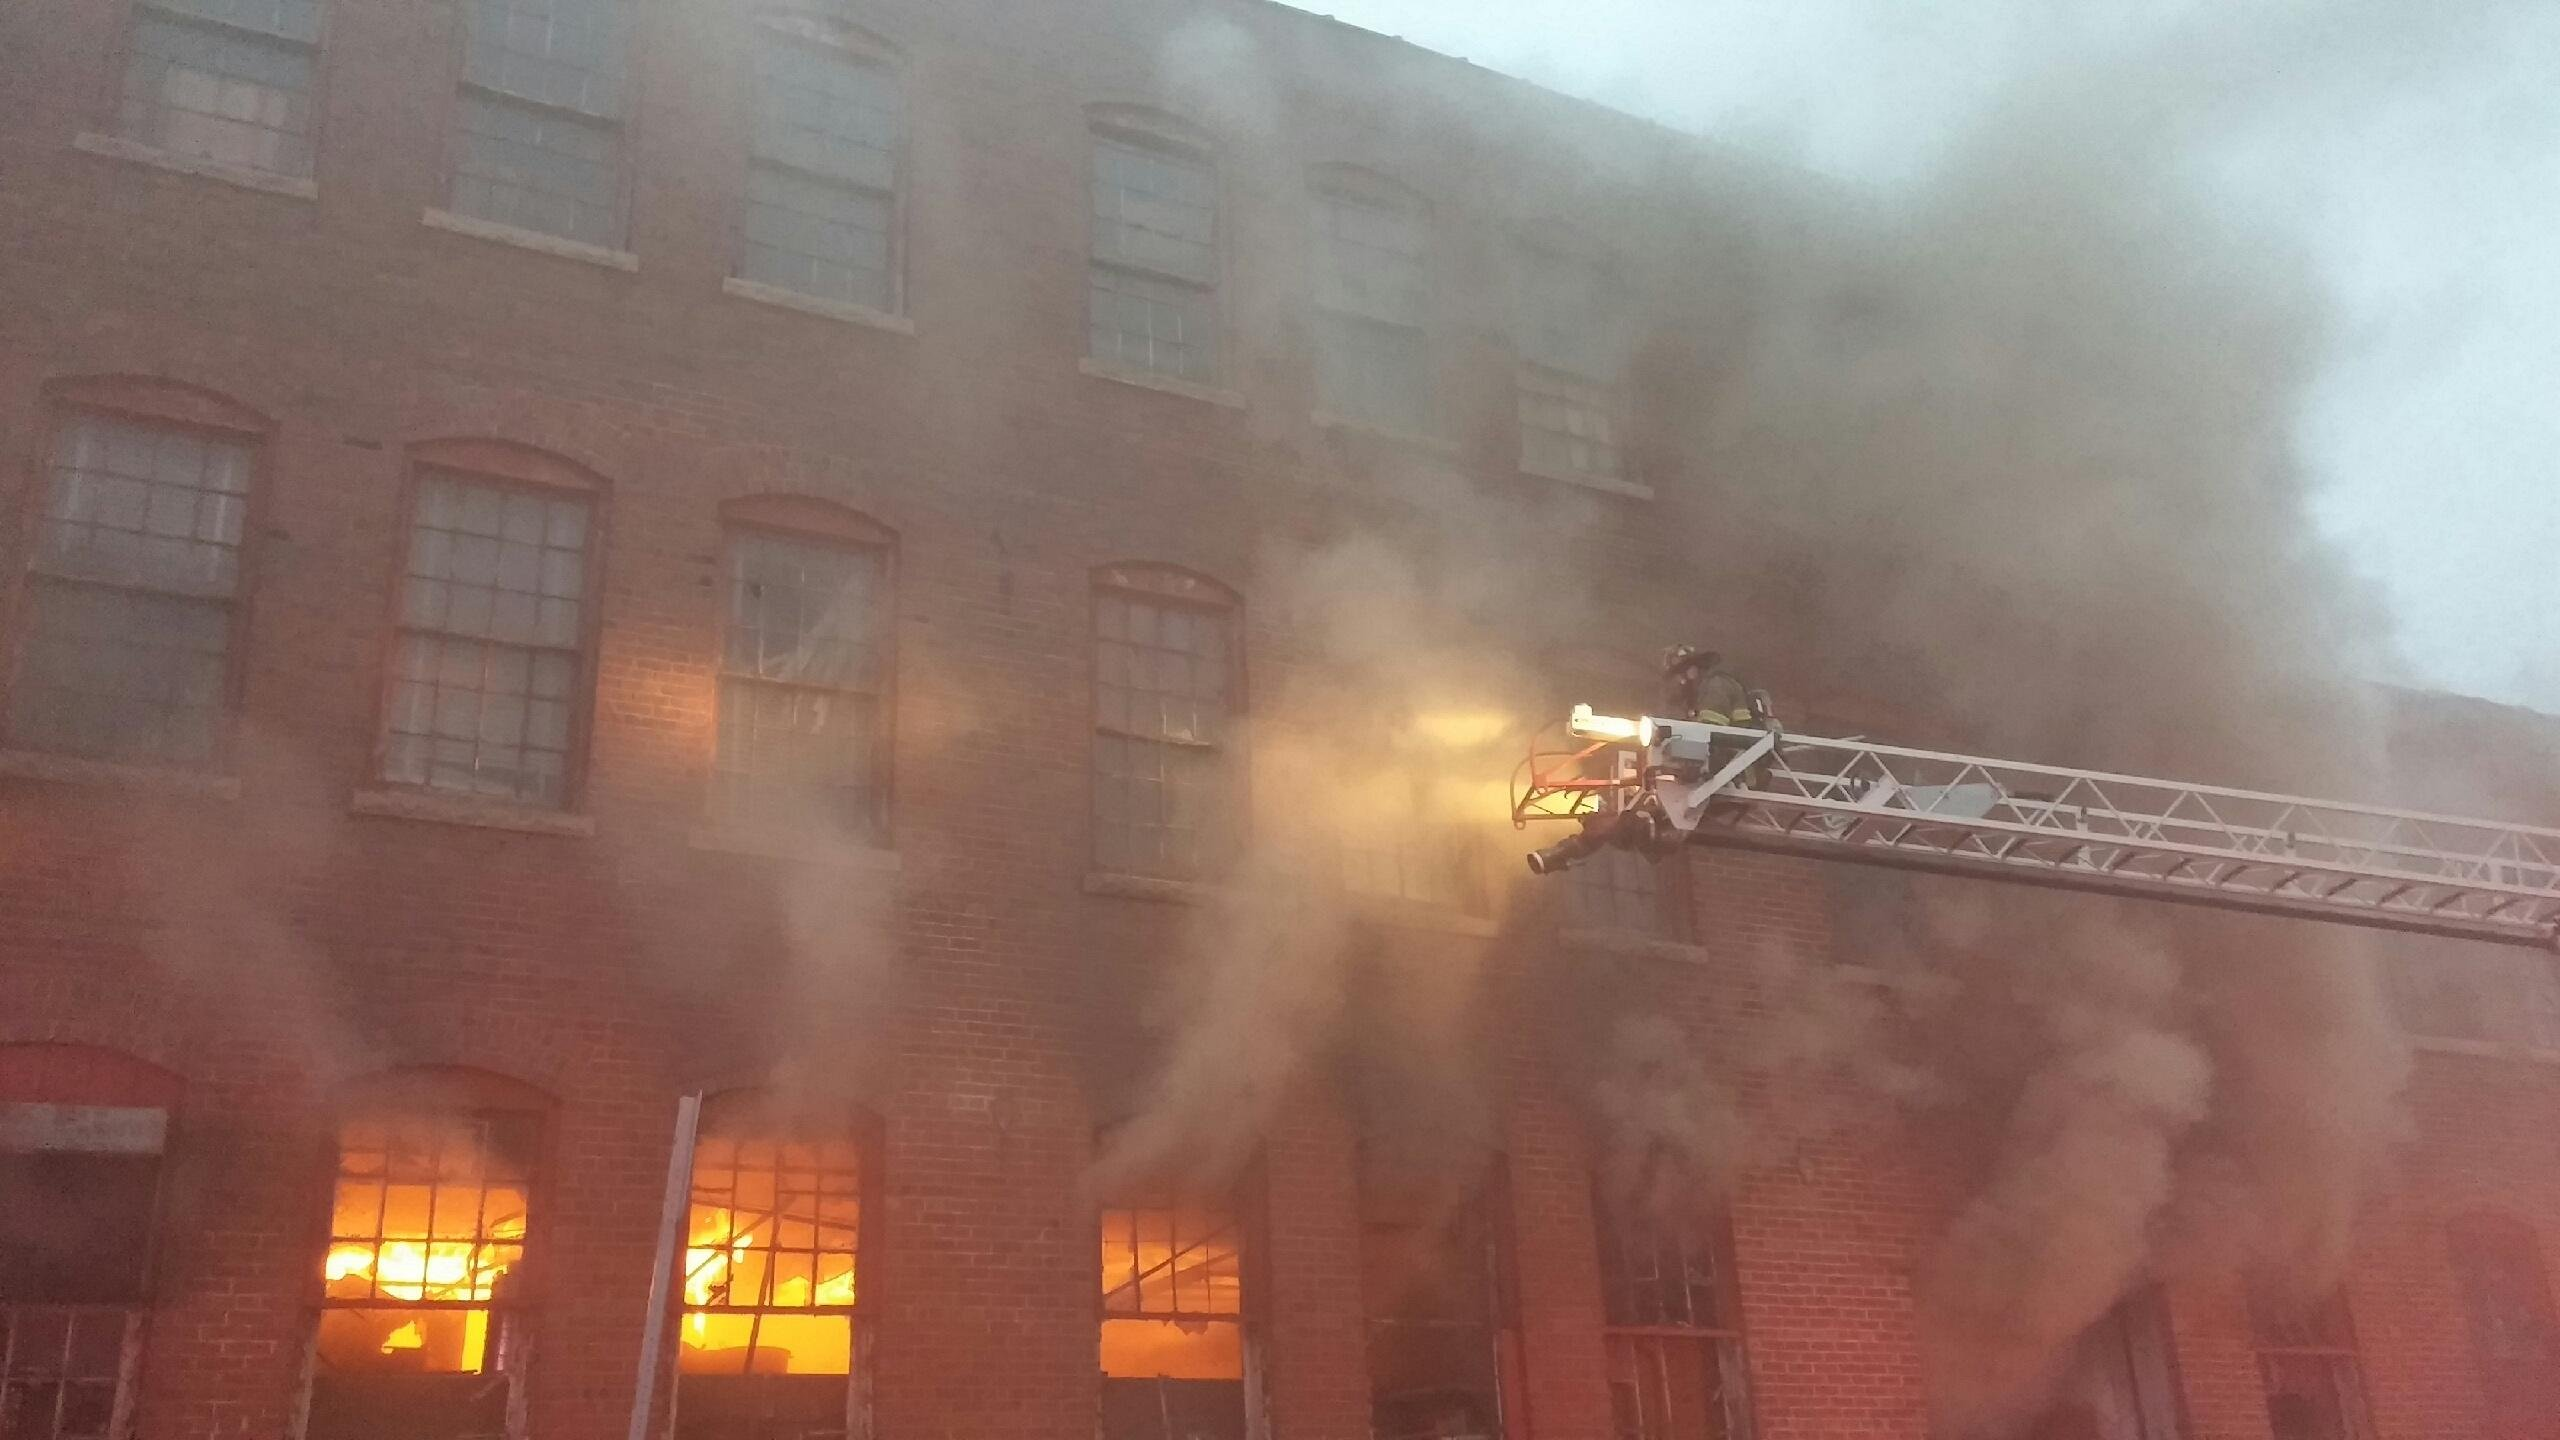 Warehouse fire in Decatur  Wandtvcom NewsCenter17 StormCenter17 Central Illinois News